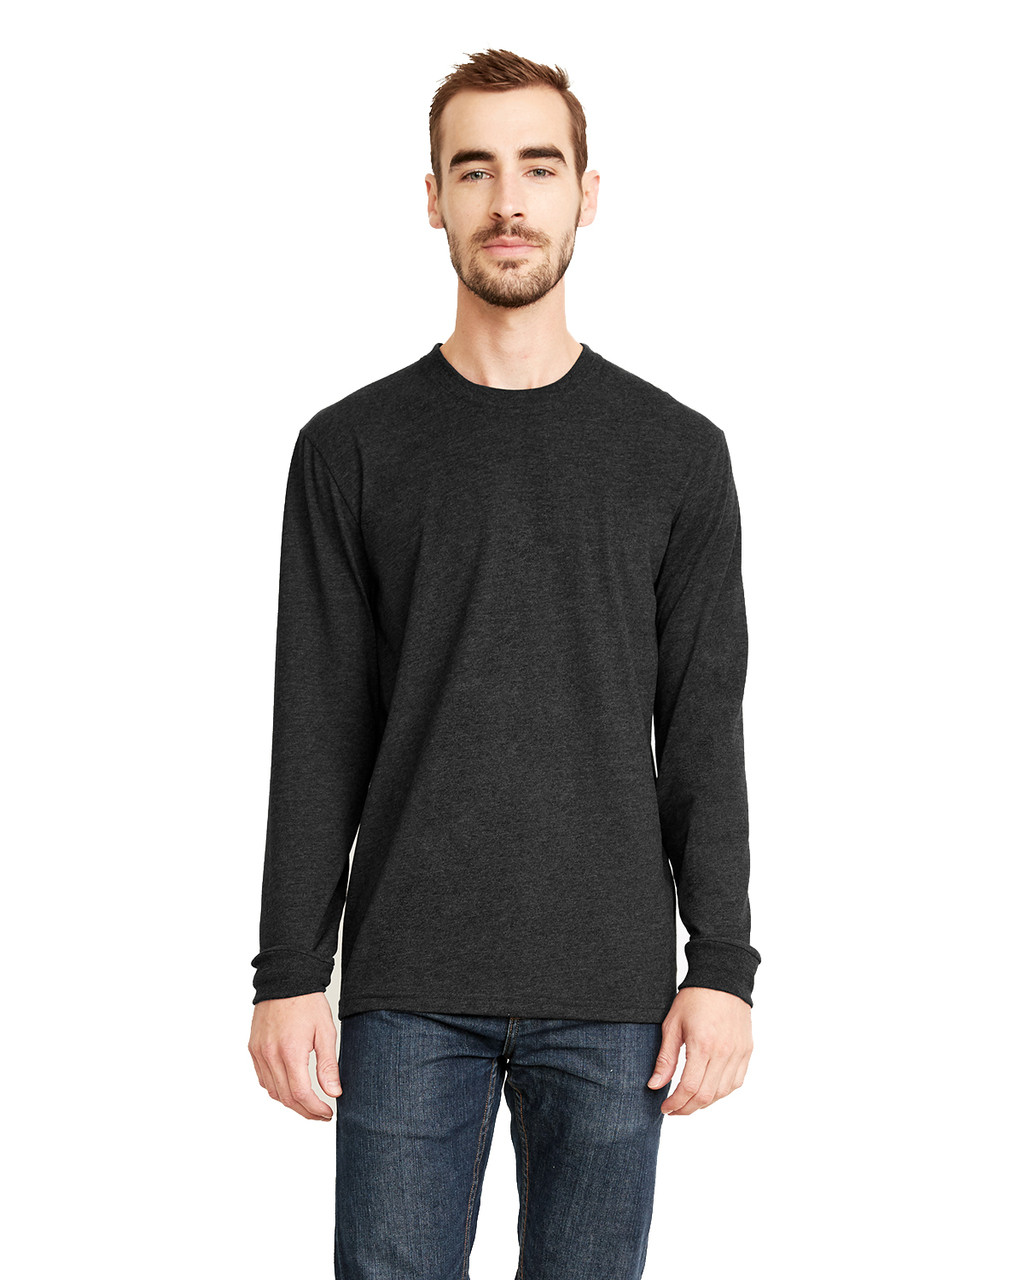 Black - 6411 Next Level Unisex Sueded Long-Sleeve Crew Shirt | Blankclothing.ca